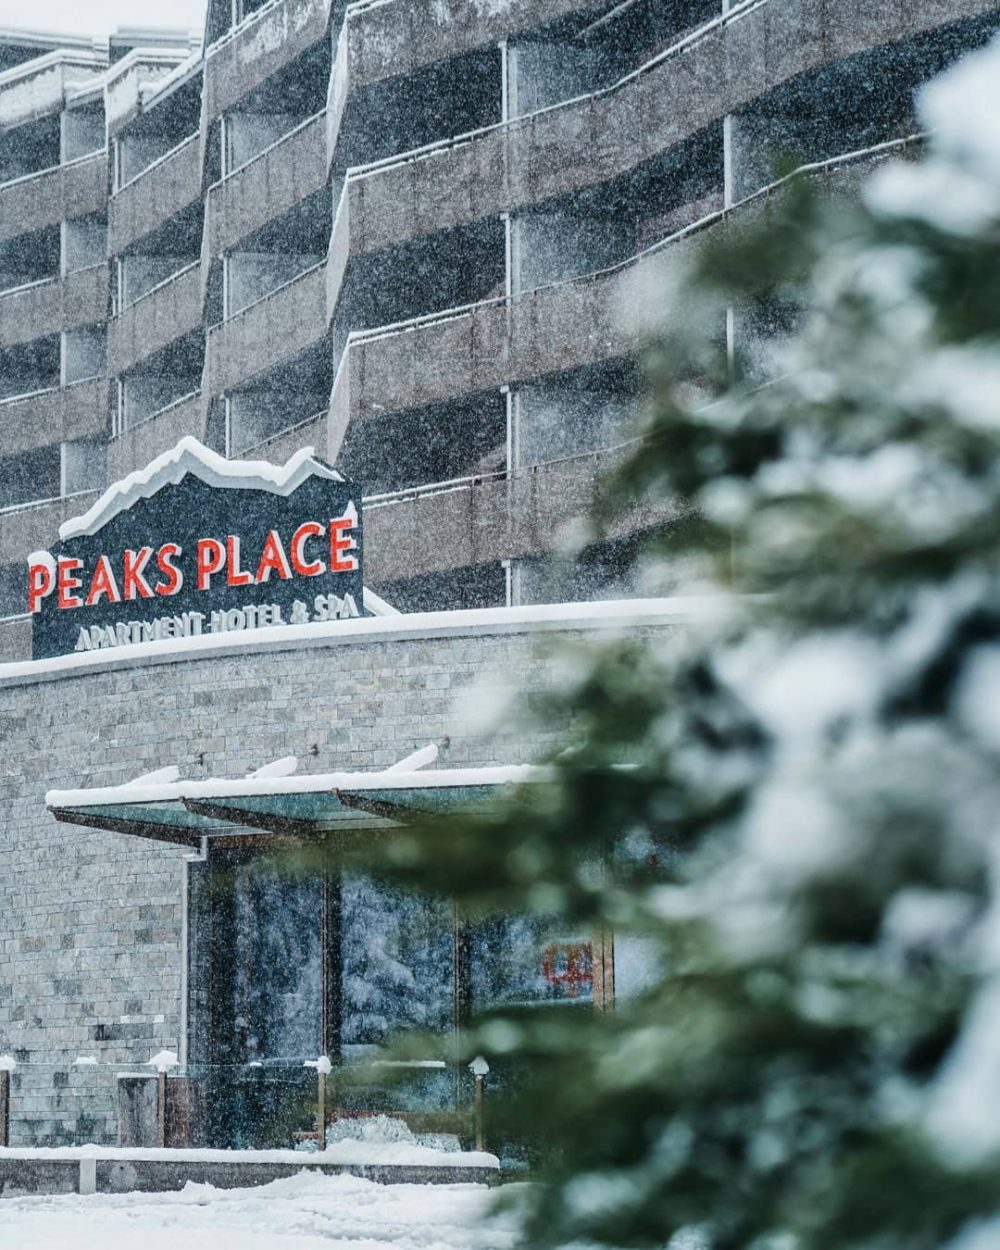 Winter In The Mountains - A Stay at Peaks Place In Laax